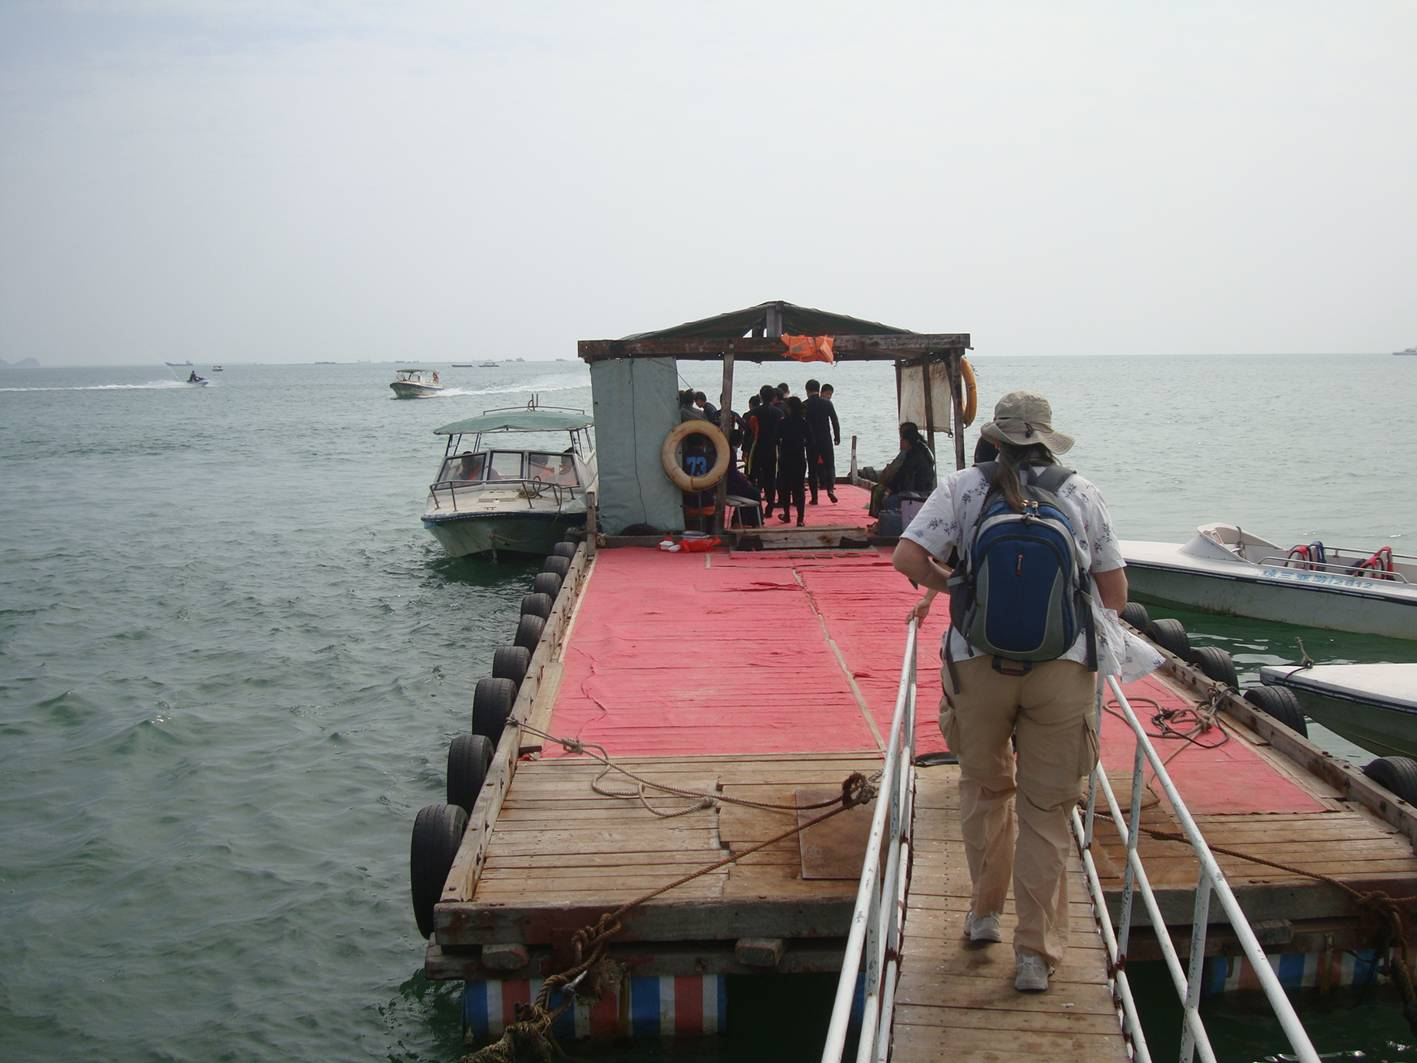 Picture:  Ruth walks the plank to the boat that will take us on the submarine ride adventure.  Da Dong Hai, Sanya, Hainan Island, China